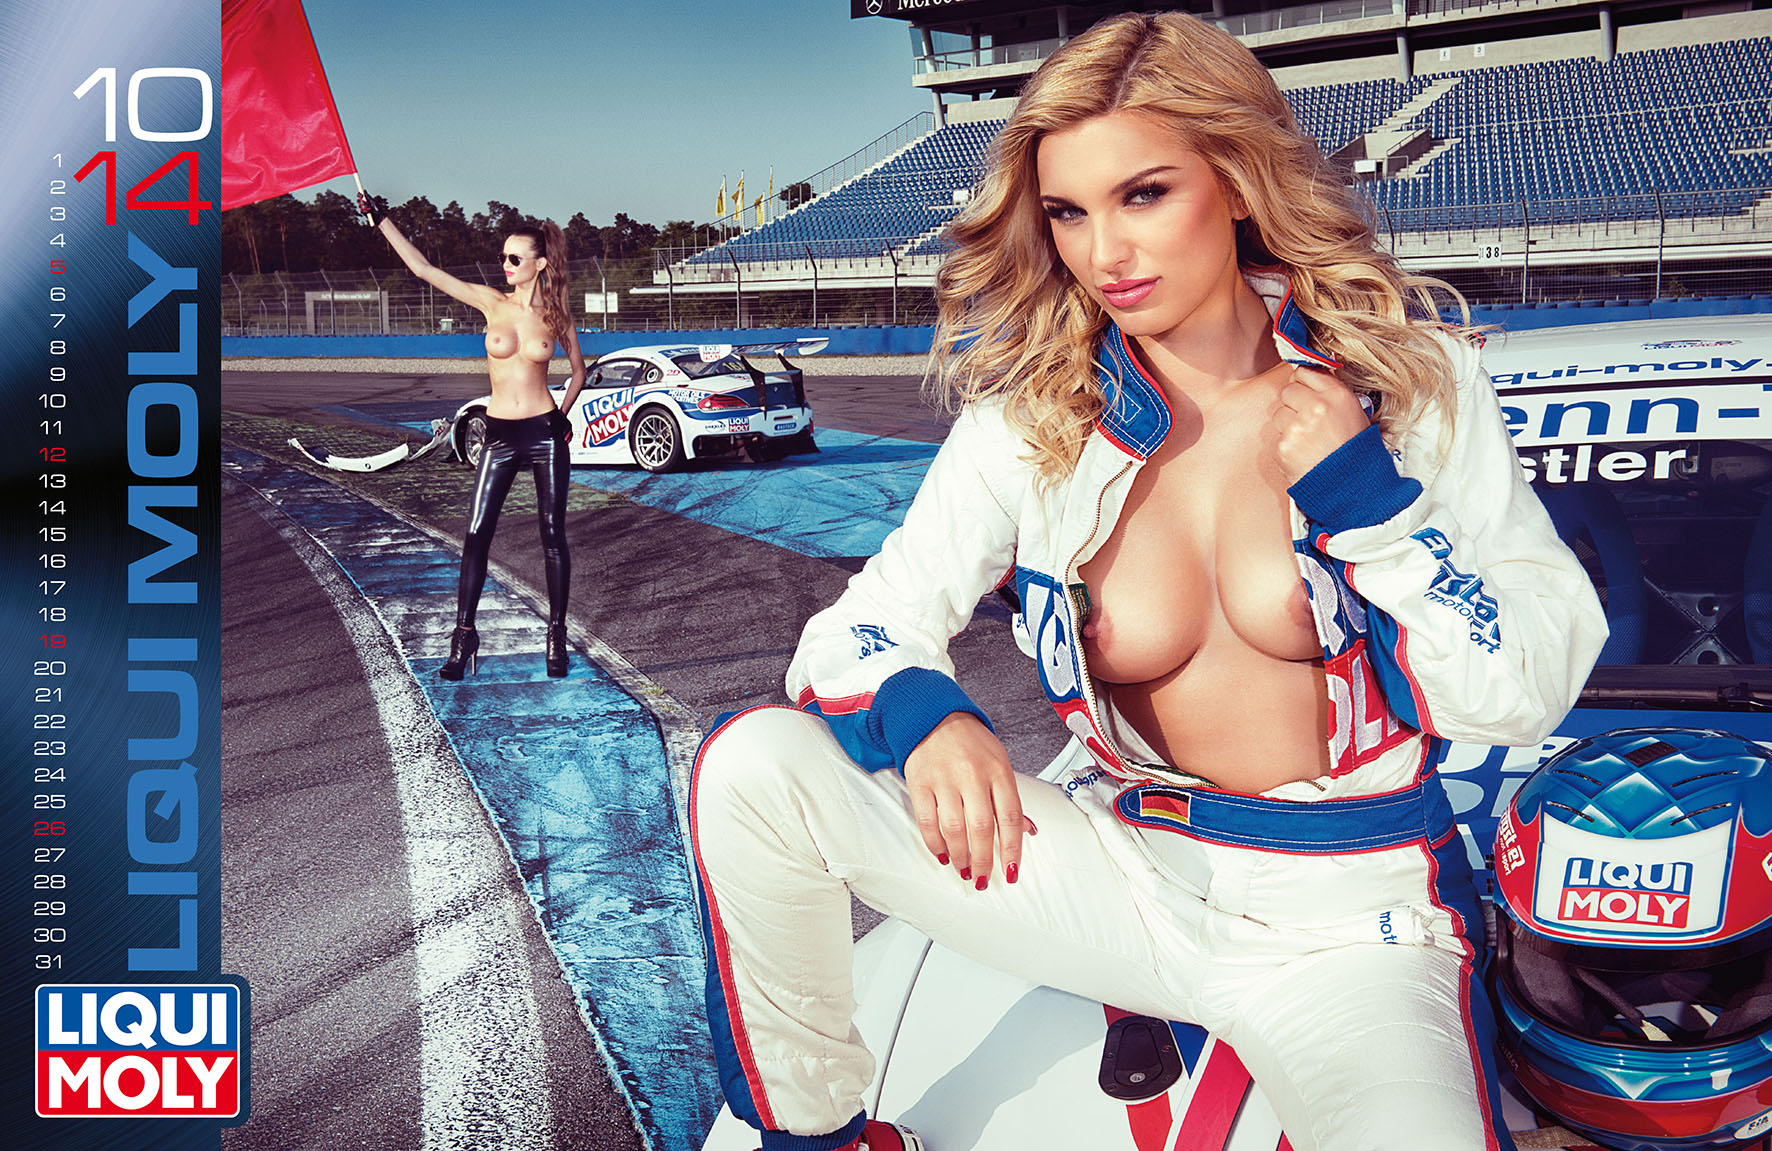 (C) Lorbe Automotive - Calendario LIQUI MOLY 2014